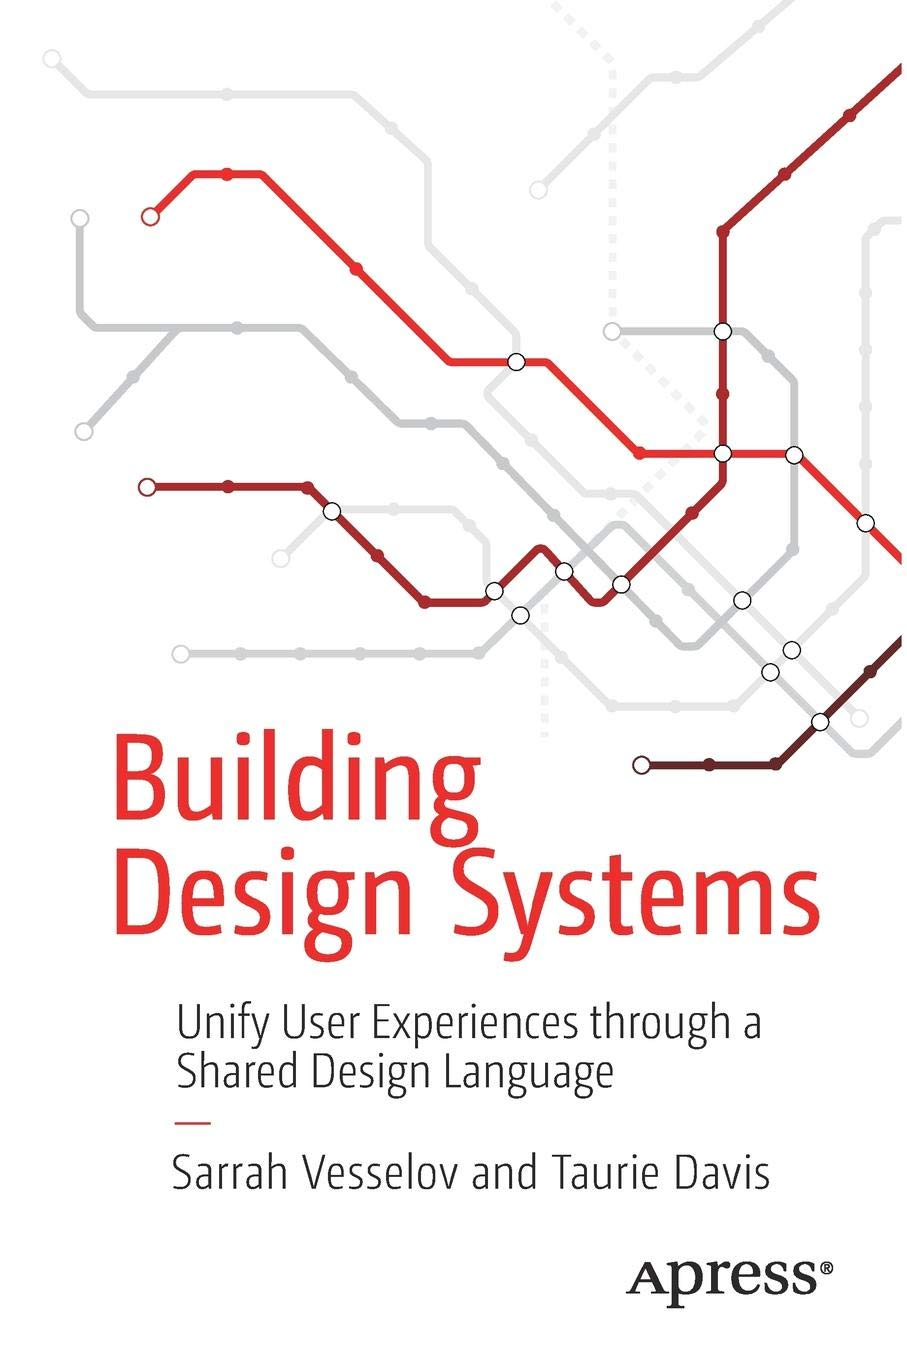 Building Design Systems Unify User Experiences through a Shared Design Language 2019 Edition